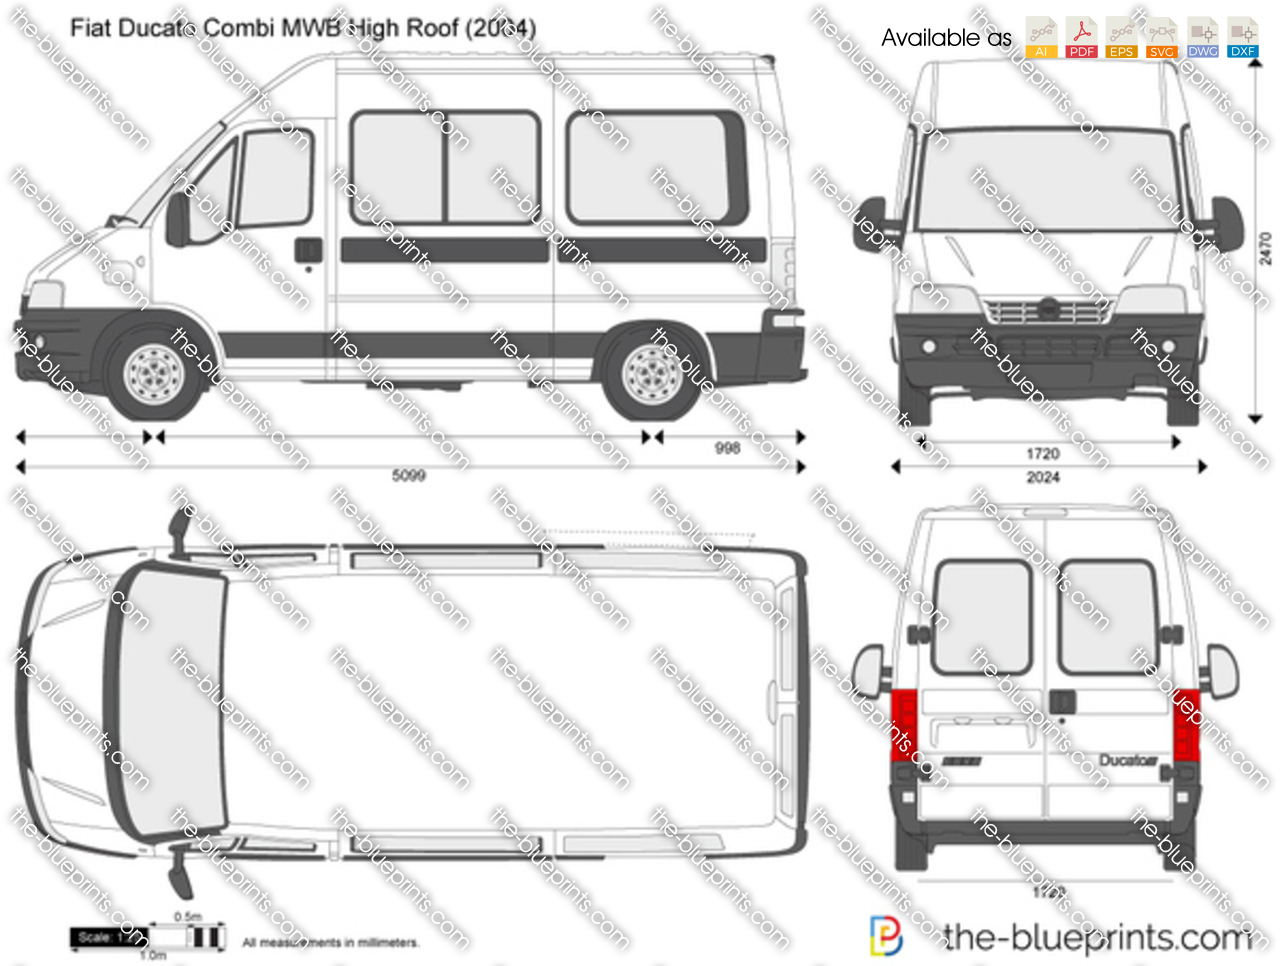 fiat ducato combi mwb high roof vector drawing. Black Bedroom Furniture Sets. Home Design Ideas